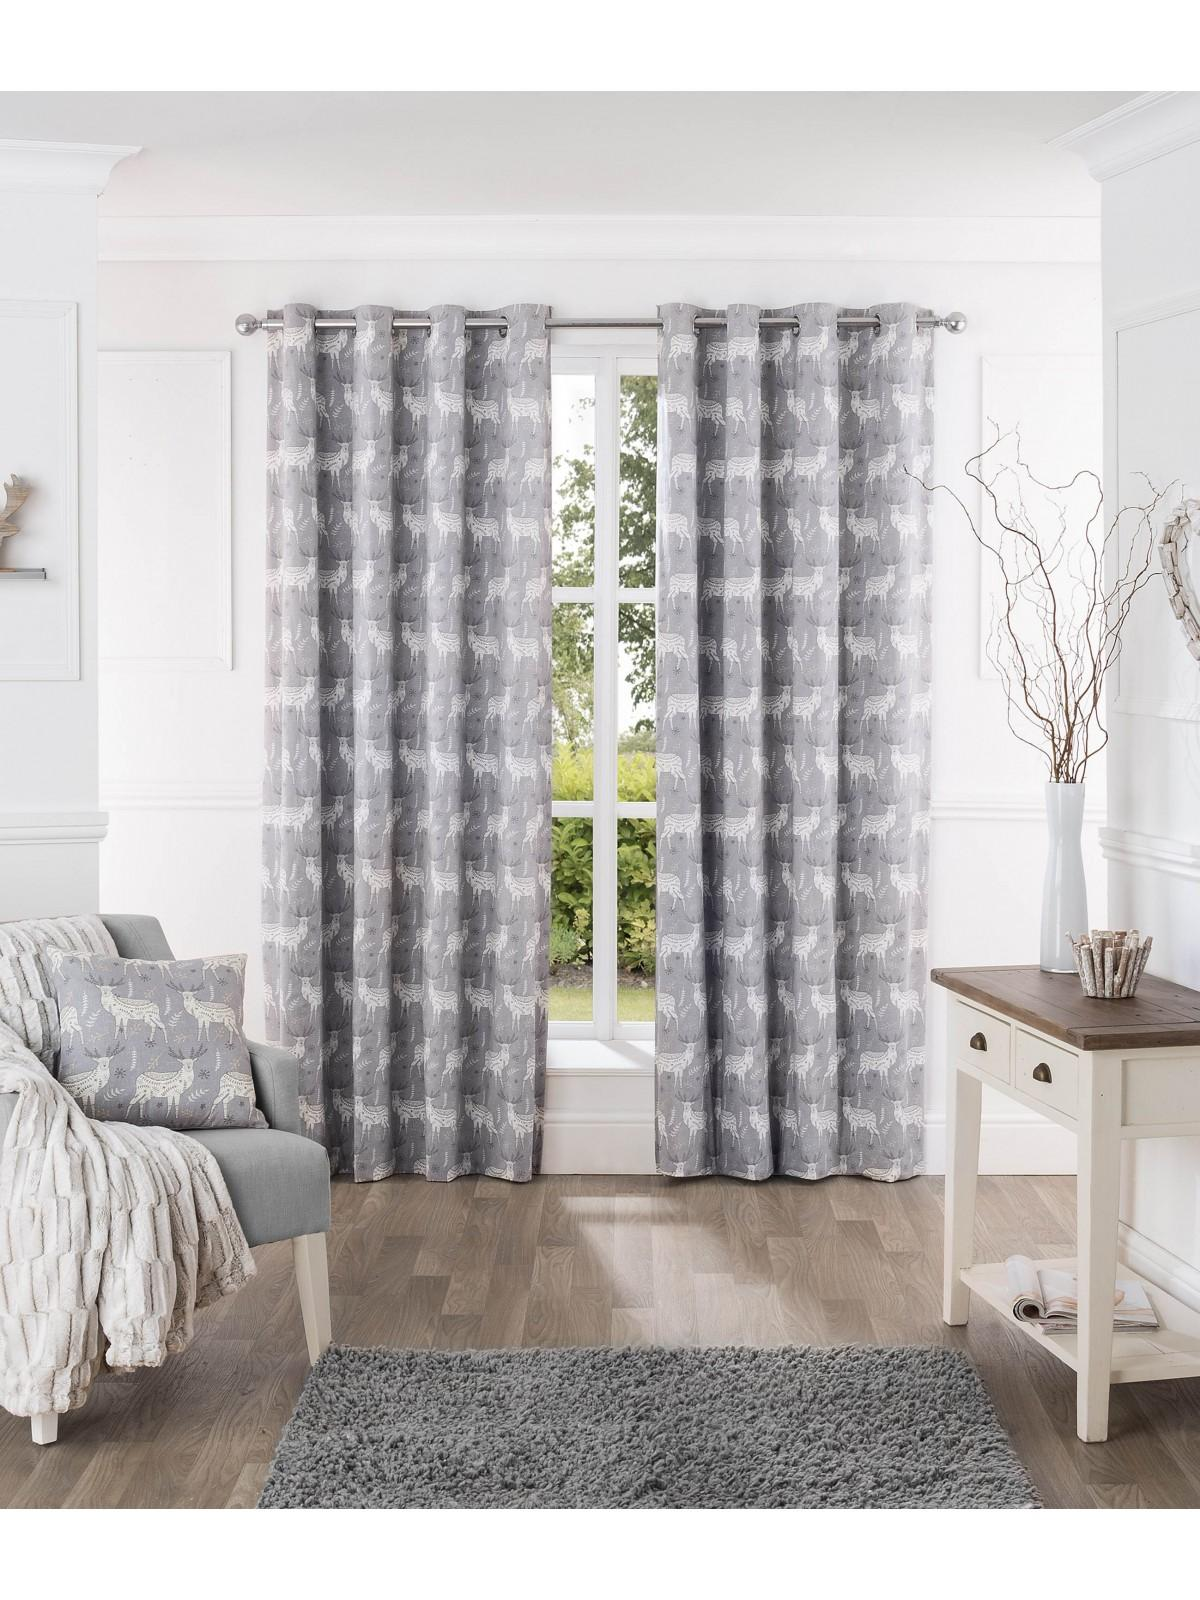 Spotlight Eyelet Curtains Can You Put Eyelet Curtains In The Washing Machine Www